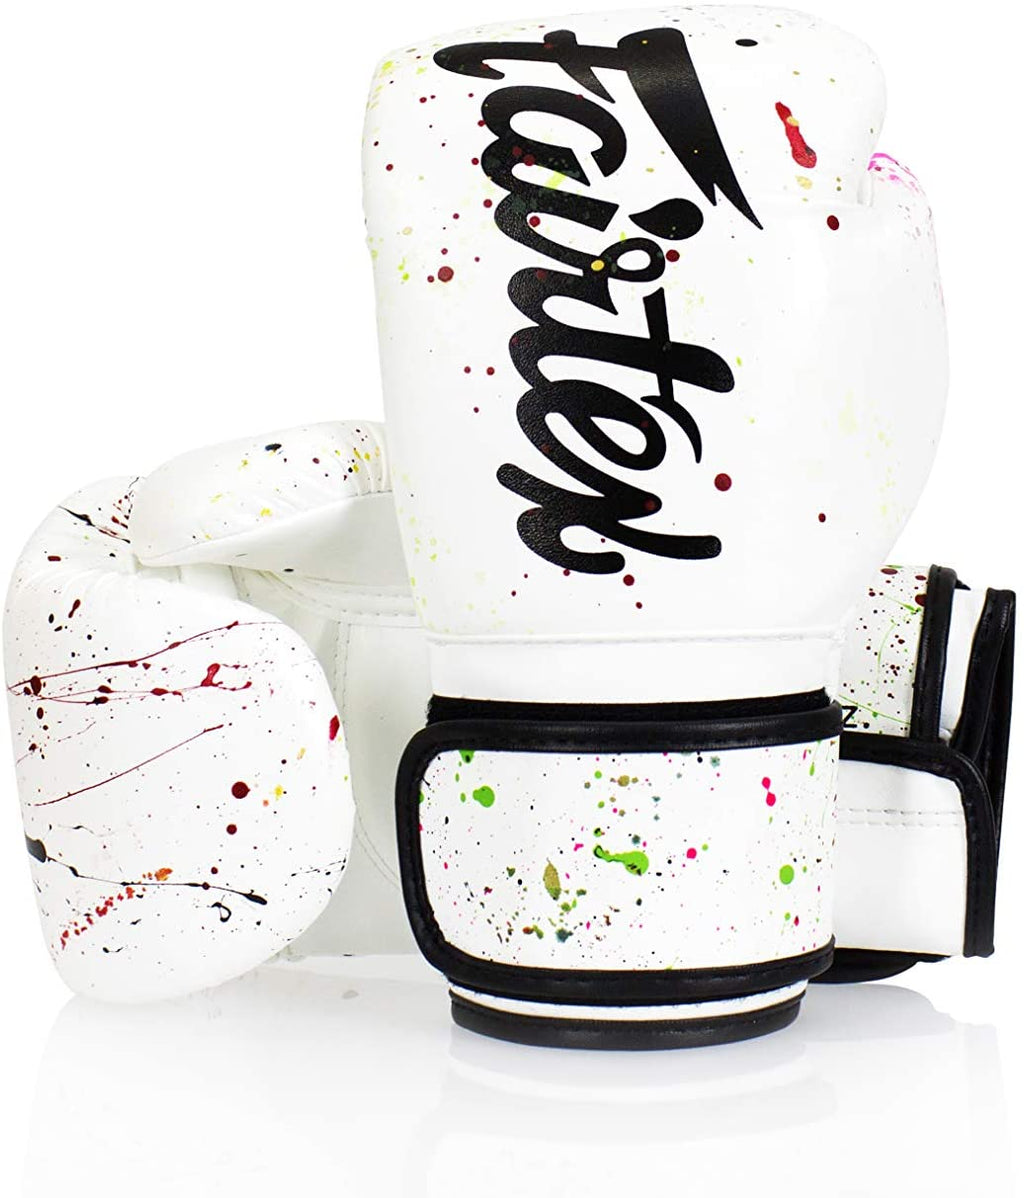 Fairtex BGV11 Painter Muay Thai Boxing Glove - Fairtex Store